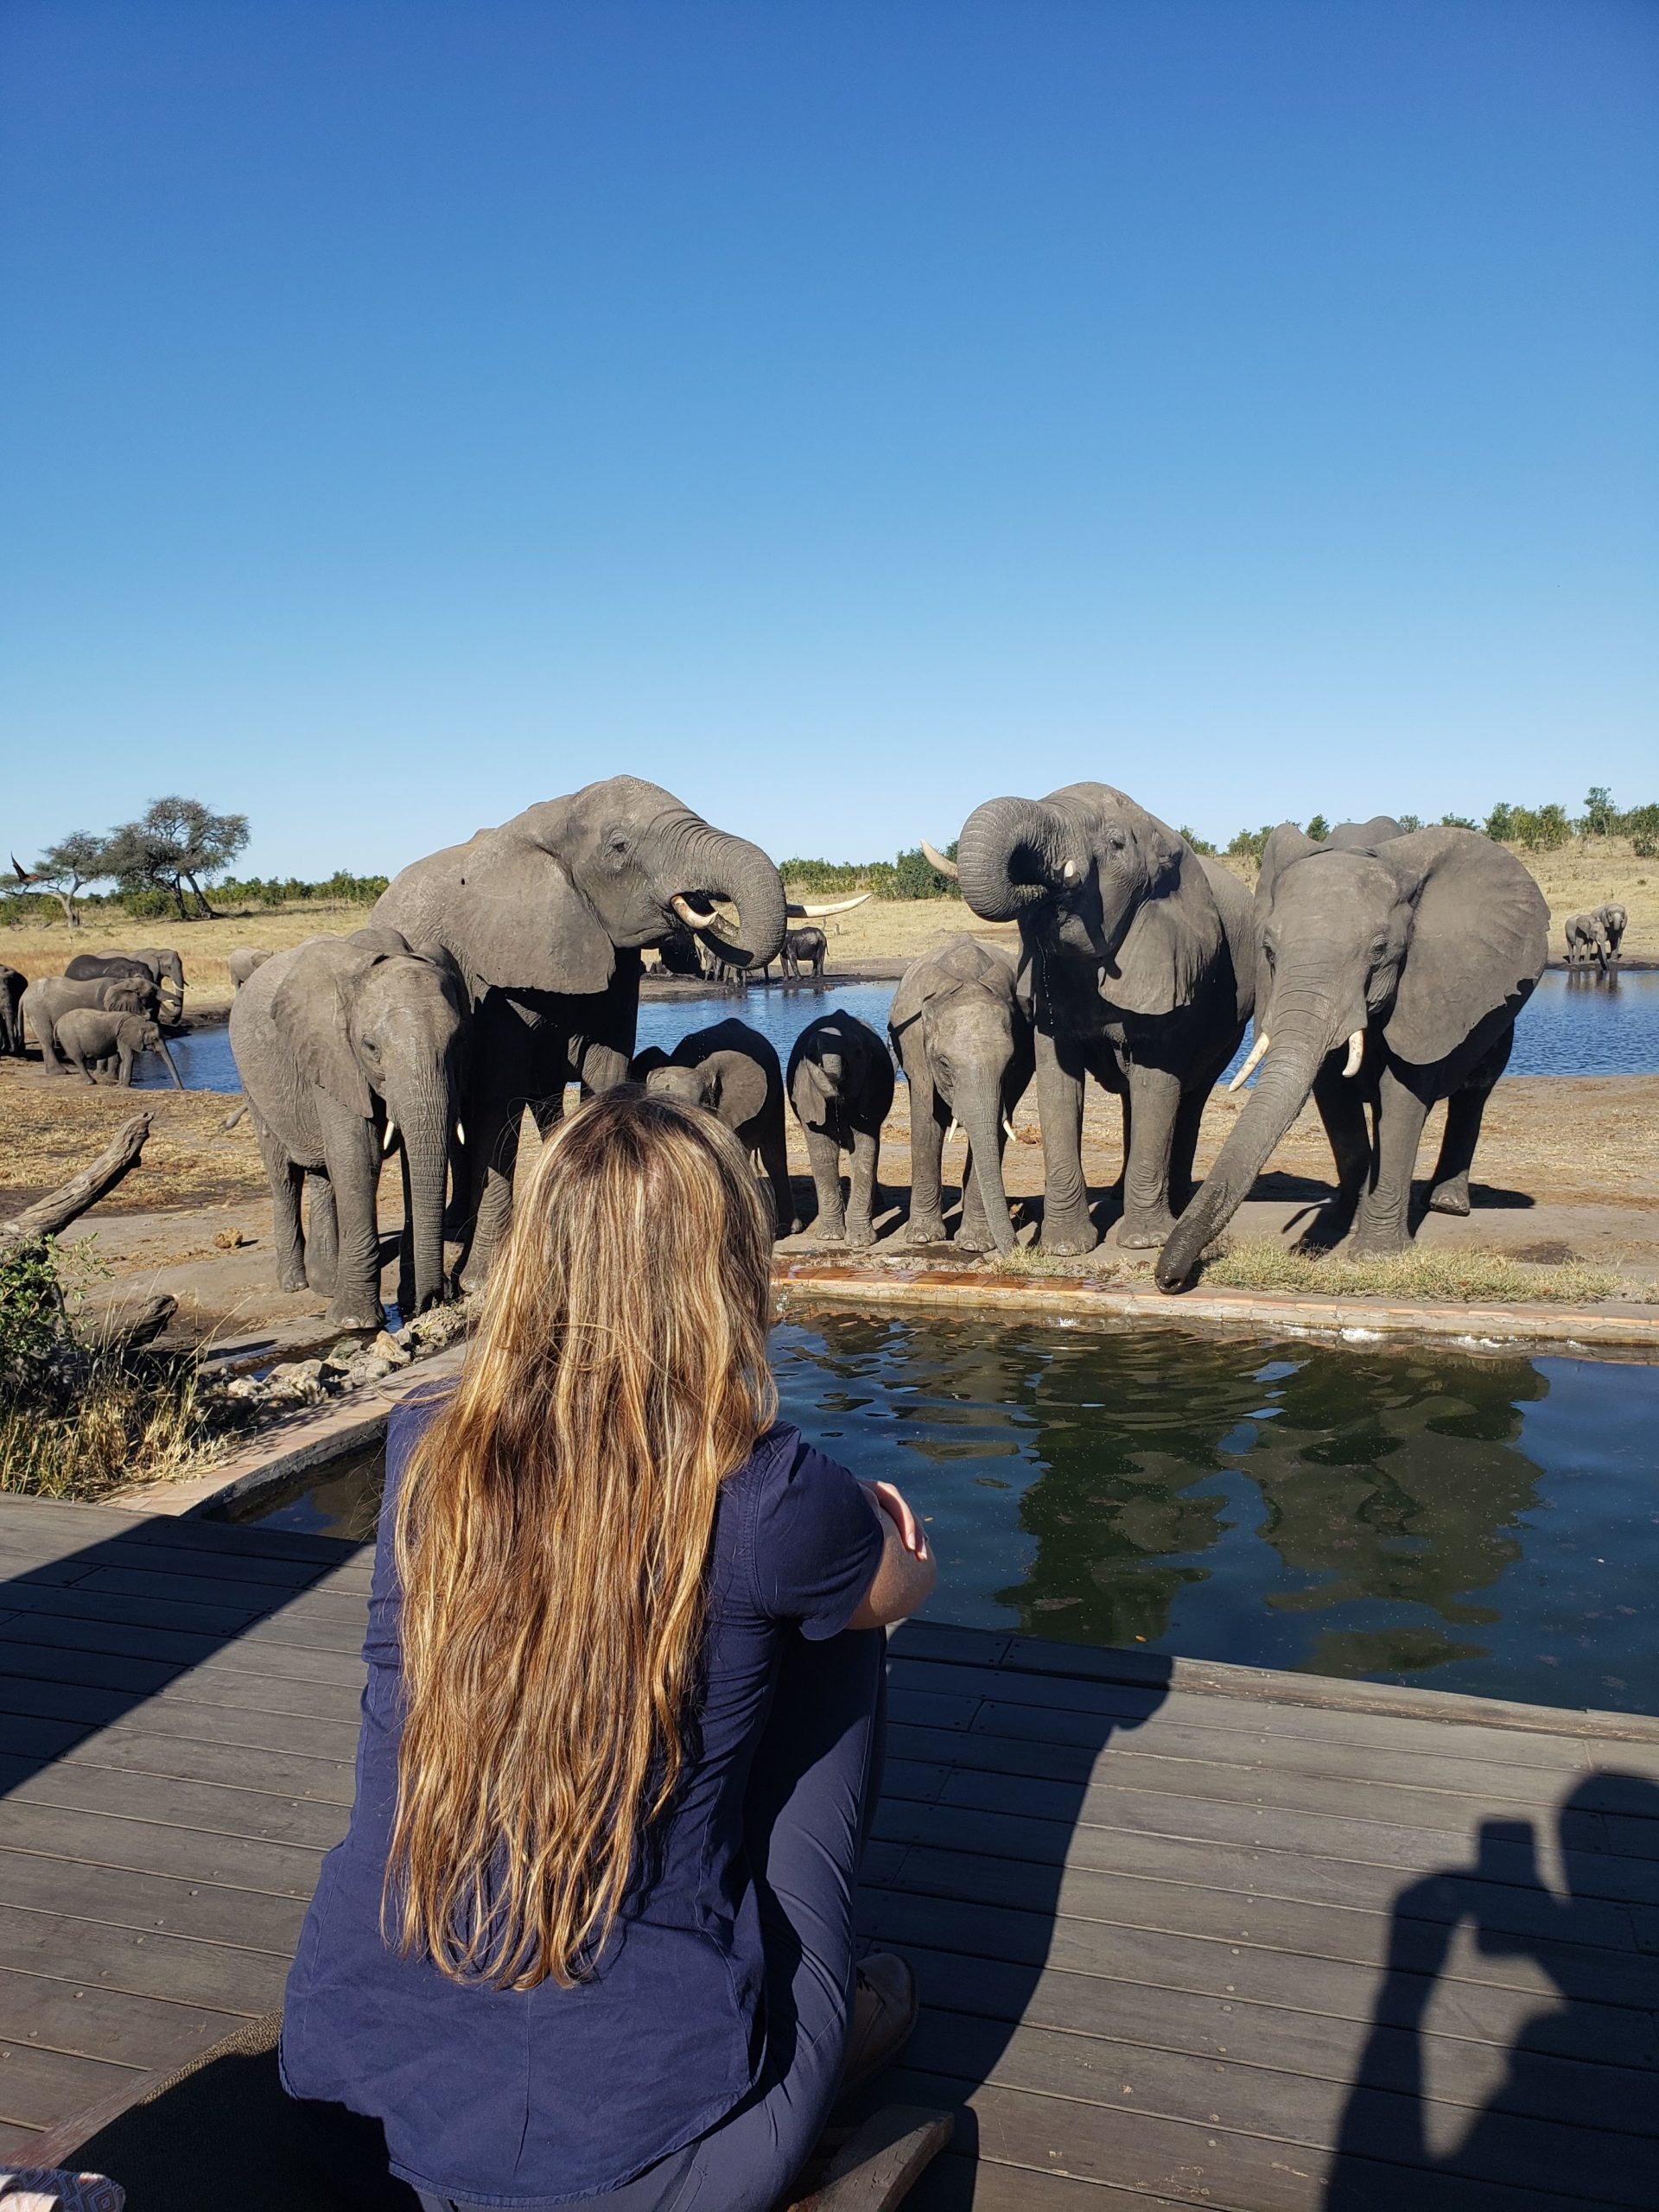 woman sitting with her back to the camera while a herd of elephants drink out of a pool in front of her in Zimbabwe